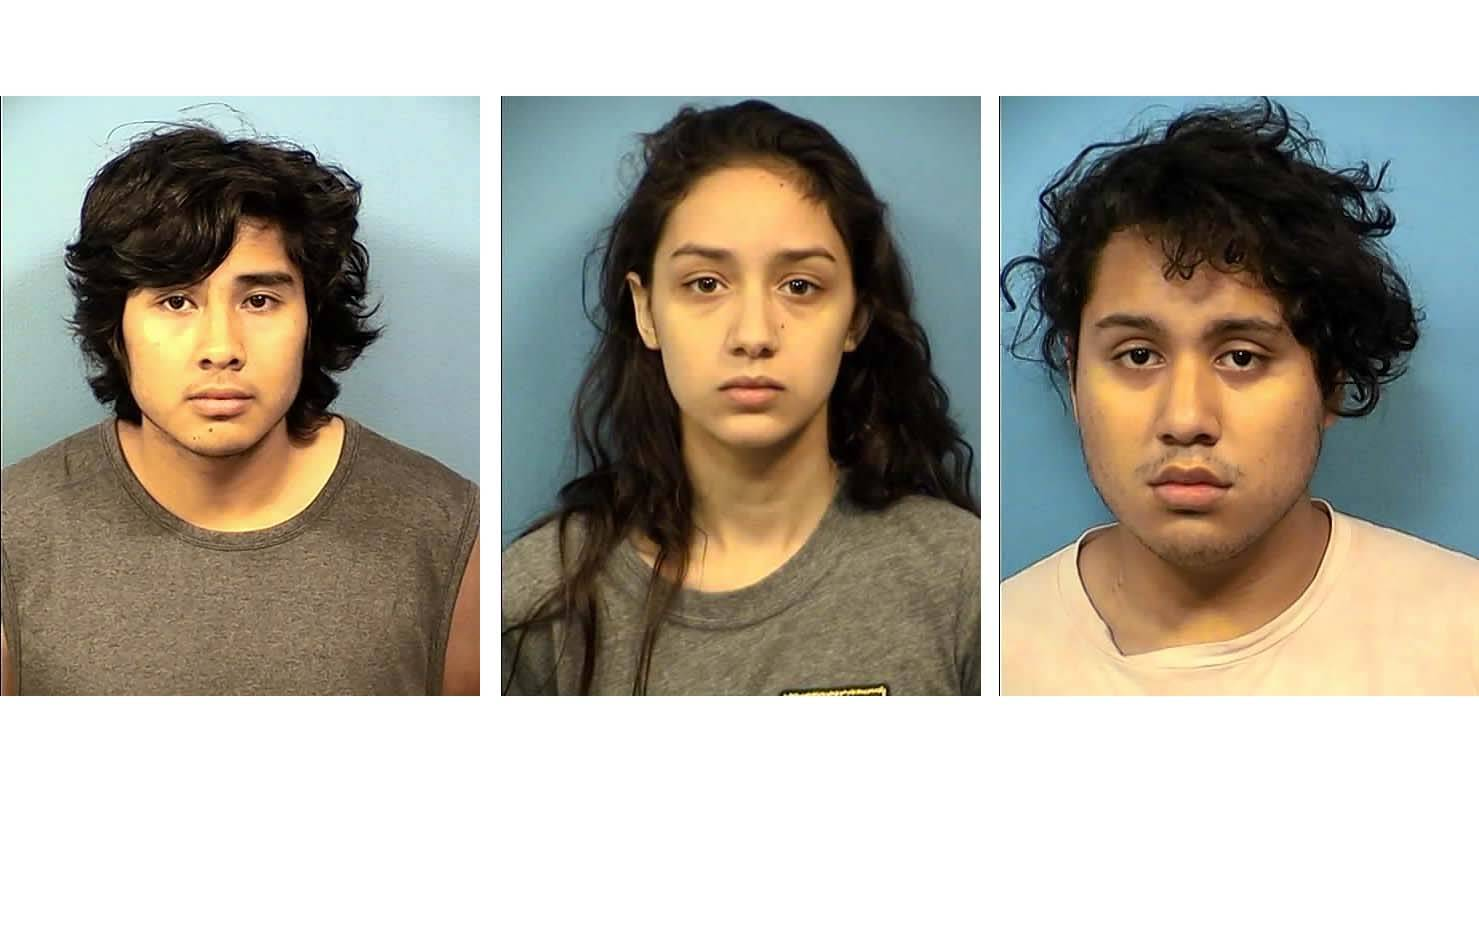 Francisco Alvarado, 18, of West Chicago; Tia Brewer, 16, of an unincorporated area near Wheaton; and Jesus Jurado Correa, 18, of West Chicago, have been charged in the murder of Luis Guerrero, 18, of West Chicago. Alvarado and Brewer are charged with first-degree murder, armed robbery and concealment of a homicidal death; Jurado Correa is charged with concealment of a homicidal death.